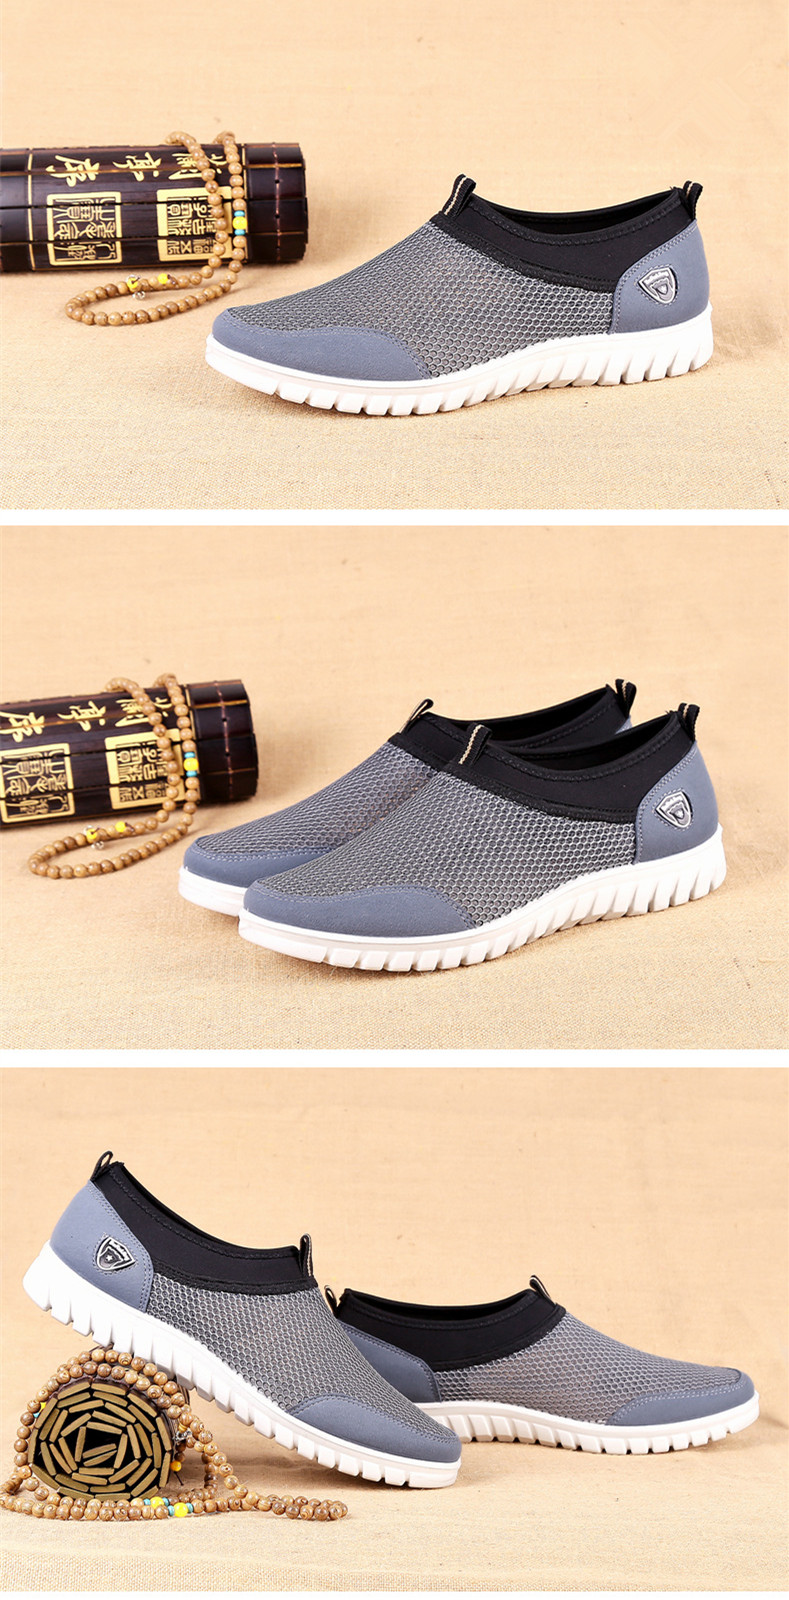 HTB1J.ppRsfpK1RjSZFOq6y6nFXa4 Summer Mesh Shoe Sneakers For Men Shoes Breathable Men's Casual Shoes Slip-On Male Shoes Loafers Casual Walking 38-48